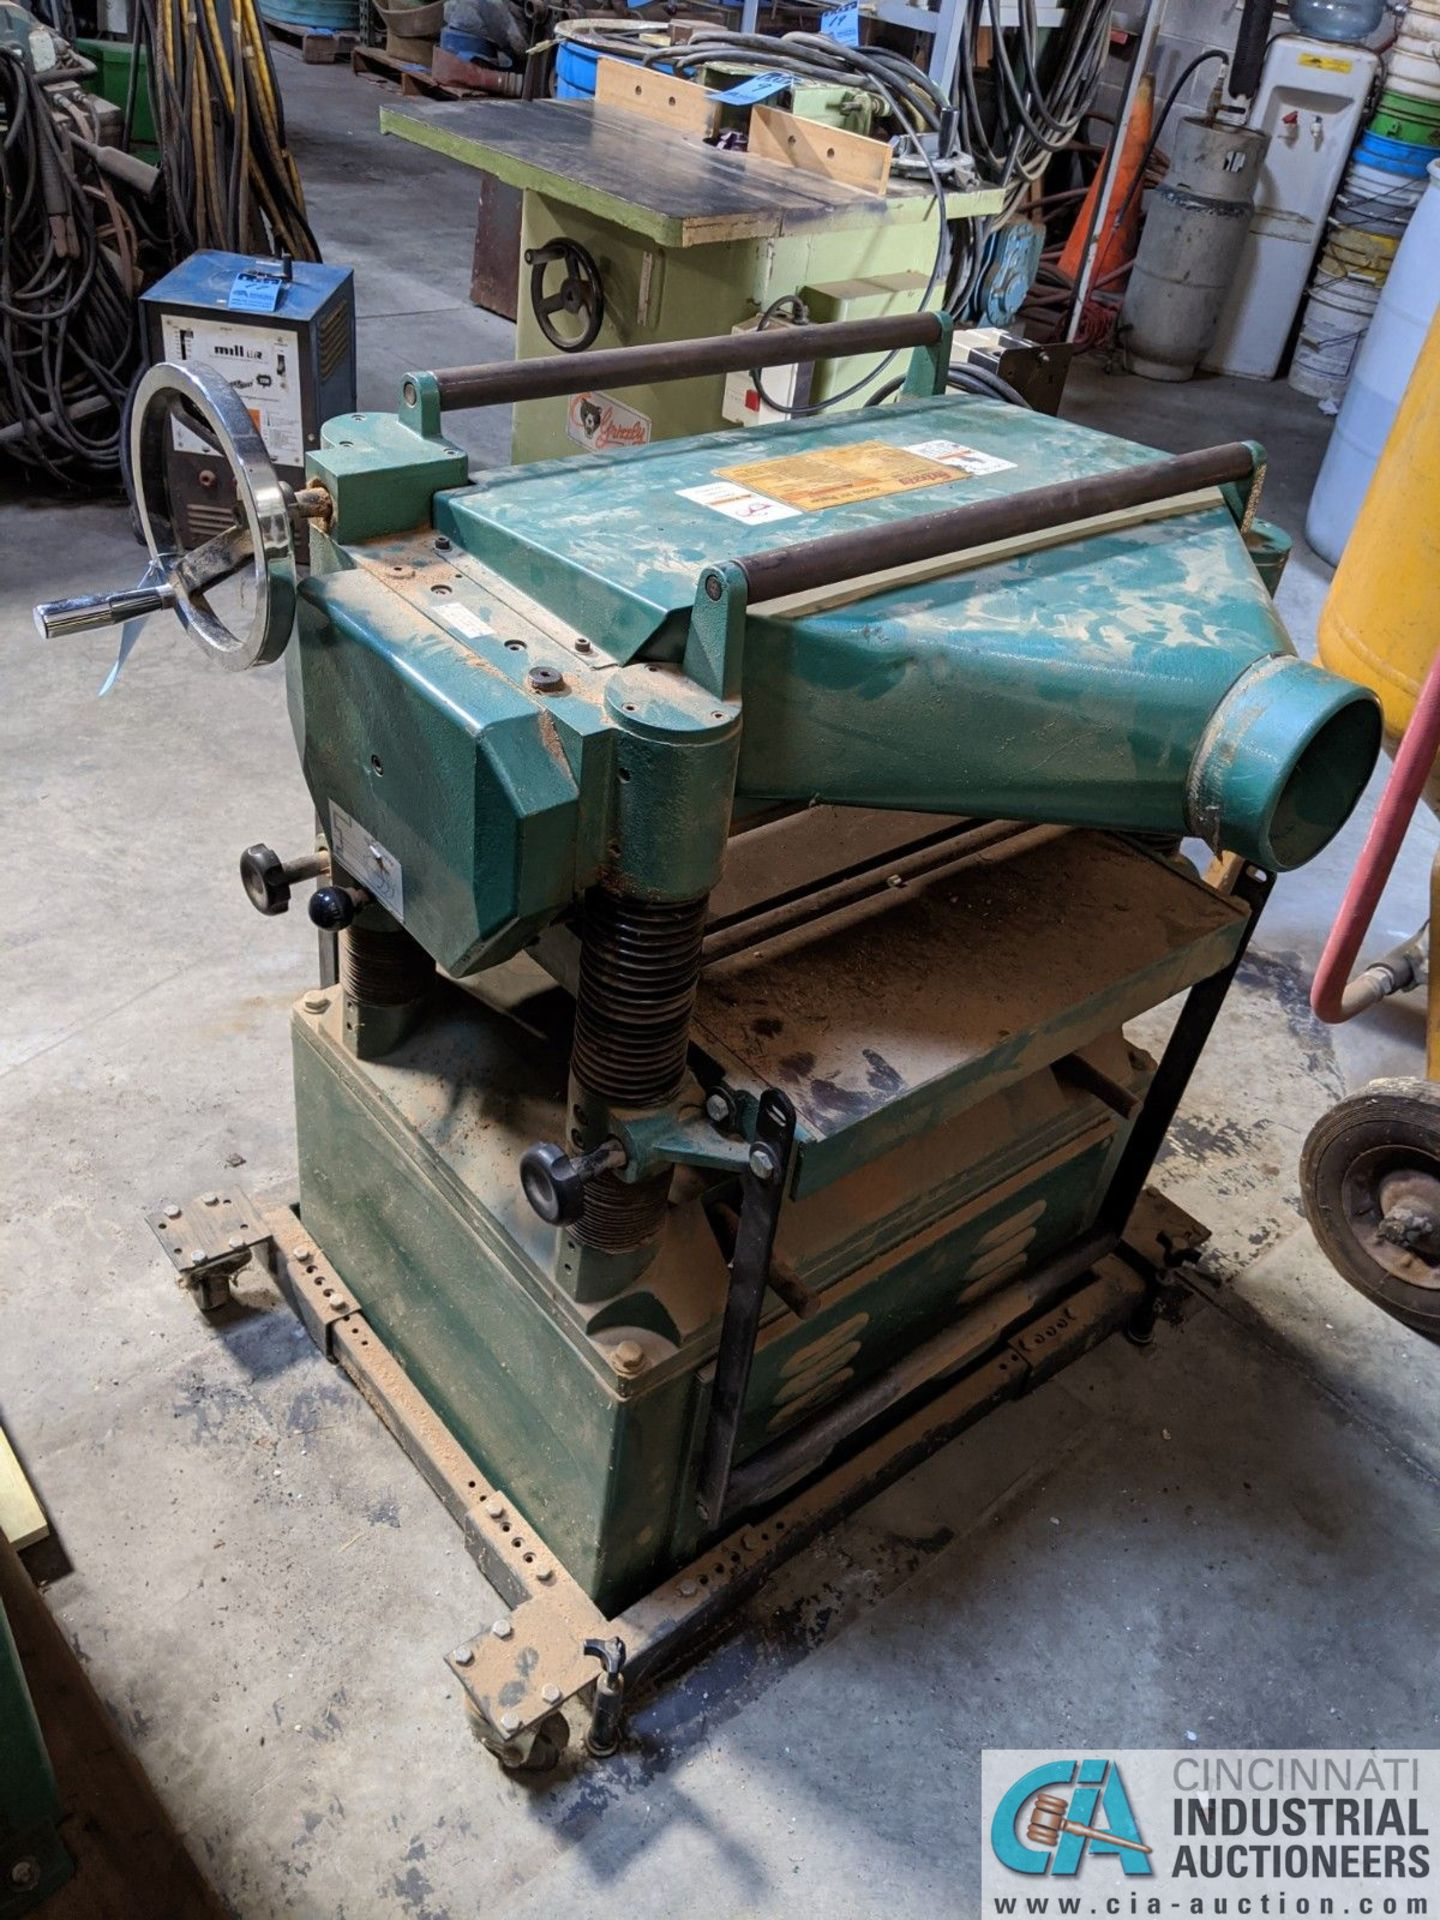 """20"""" GRIZZLY MODEL G1033 PLANER; S/N 636874, 16 - 20 FPM (8635 East Ave., Mentor, OH 44060 - John - Image 3 of 6"""